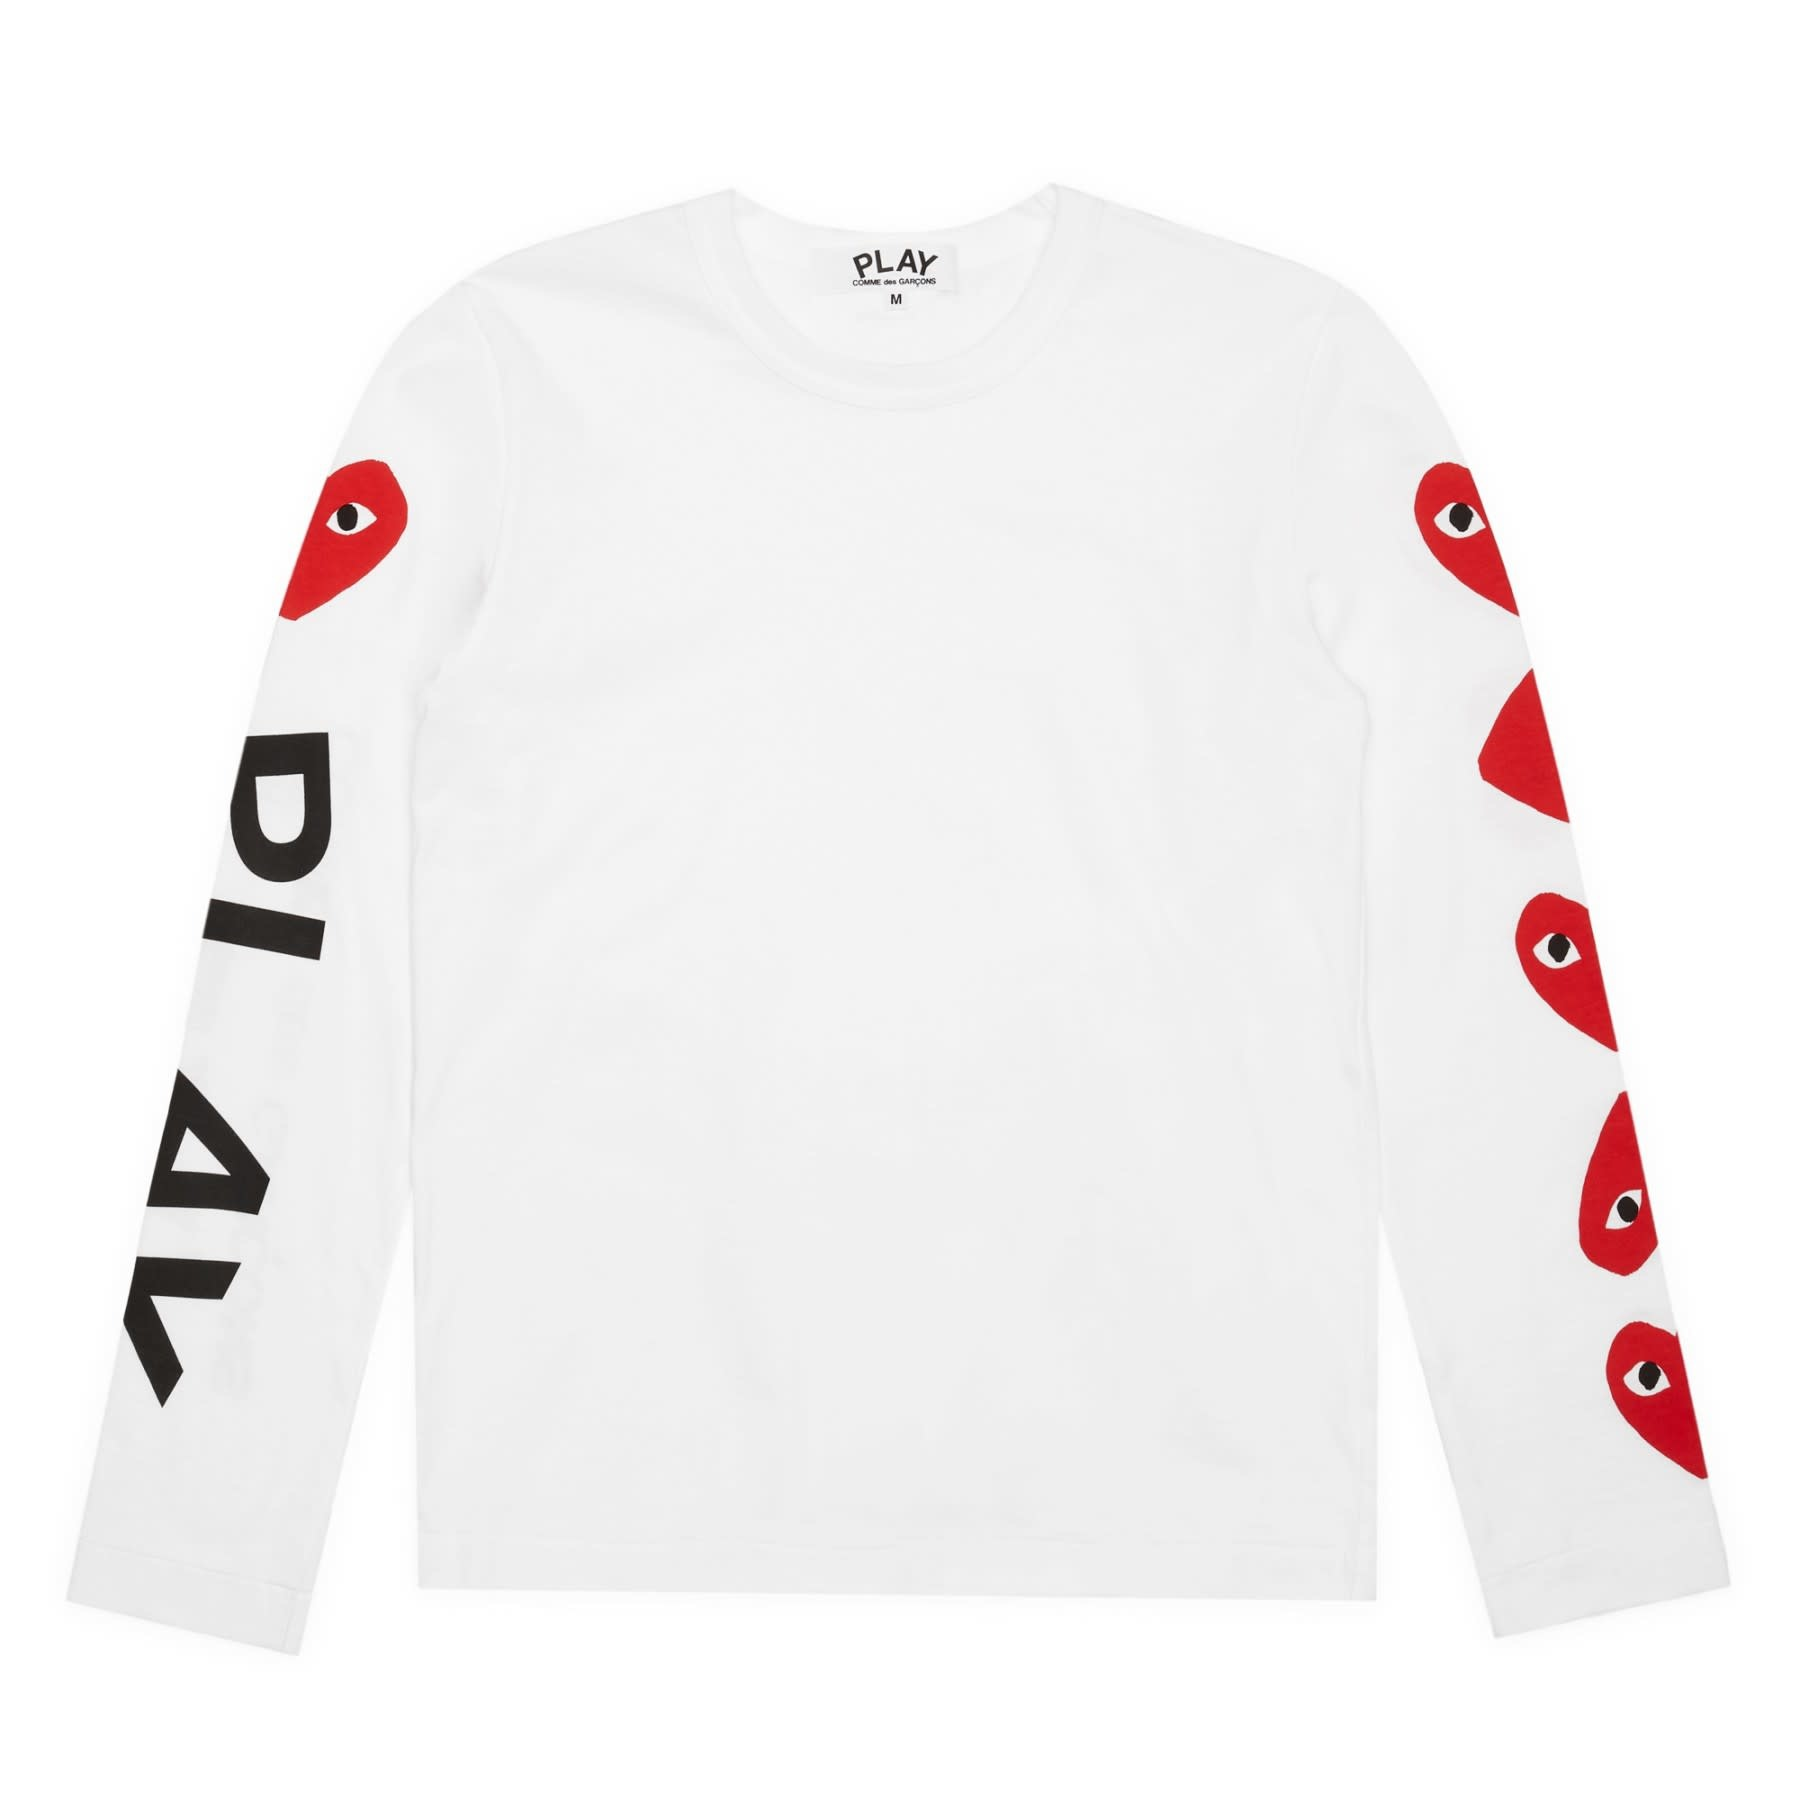 COMME des GARÇONS PLAY CDG PLAY 4 Heart Long Sleeve T-shirt in White